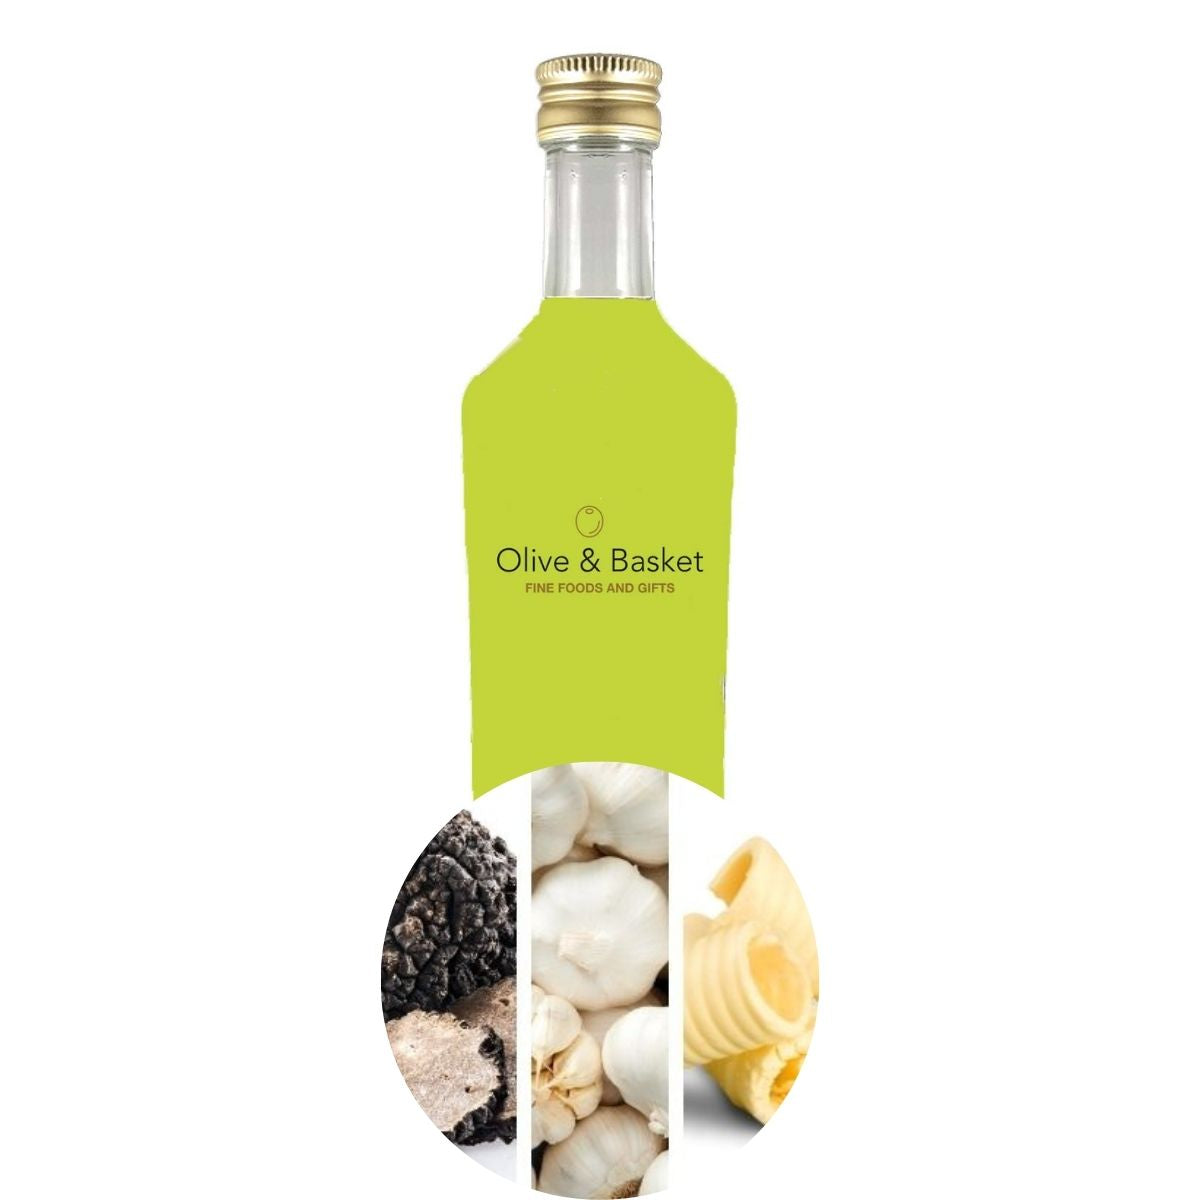 Black Truffle, Garlic, and Butter Extra Virgin Olive Oil- Bestseller